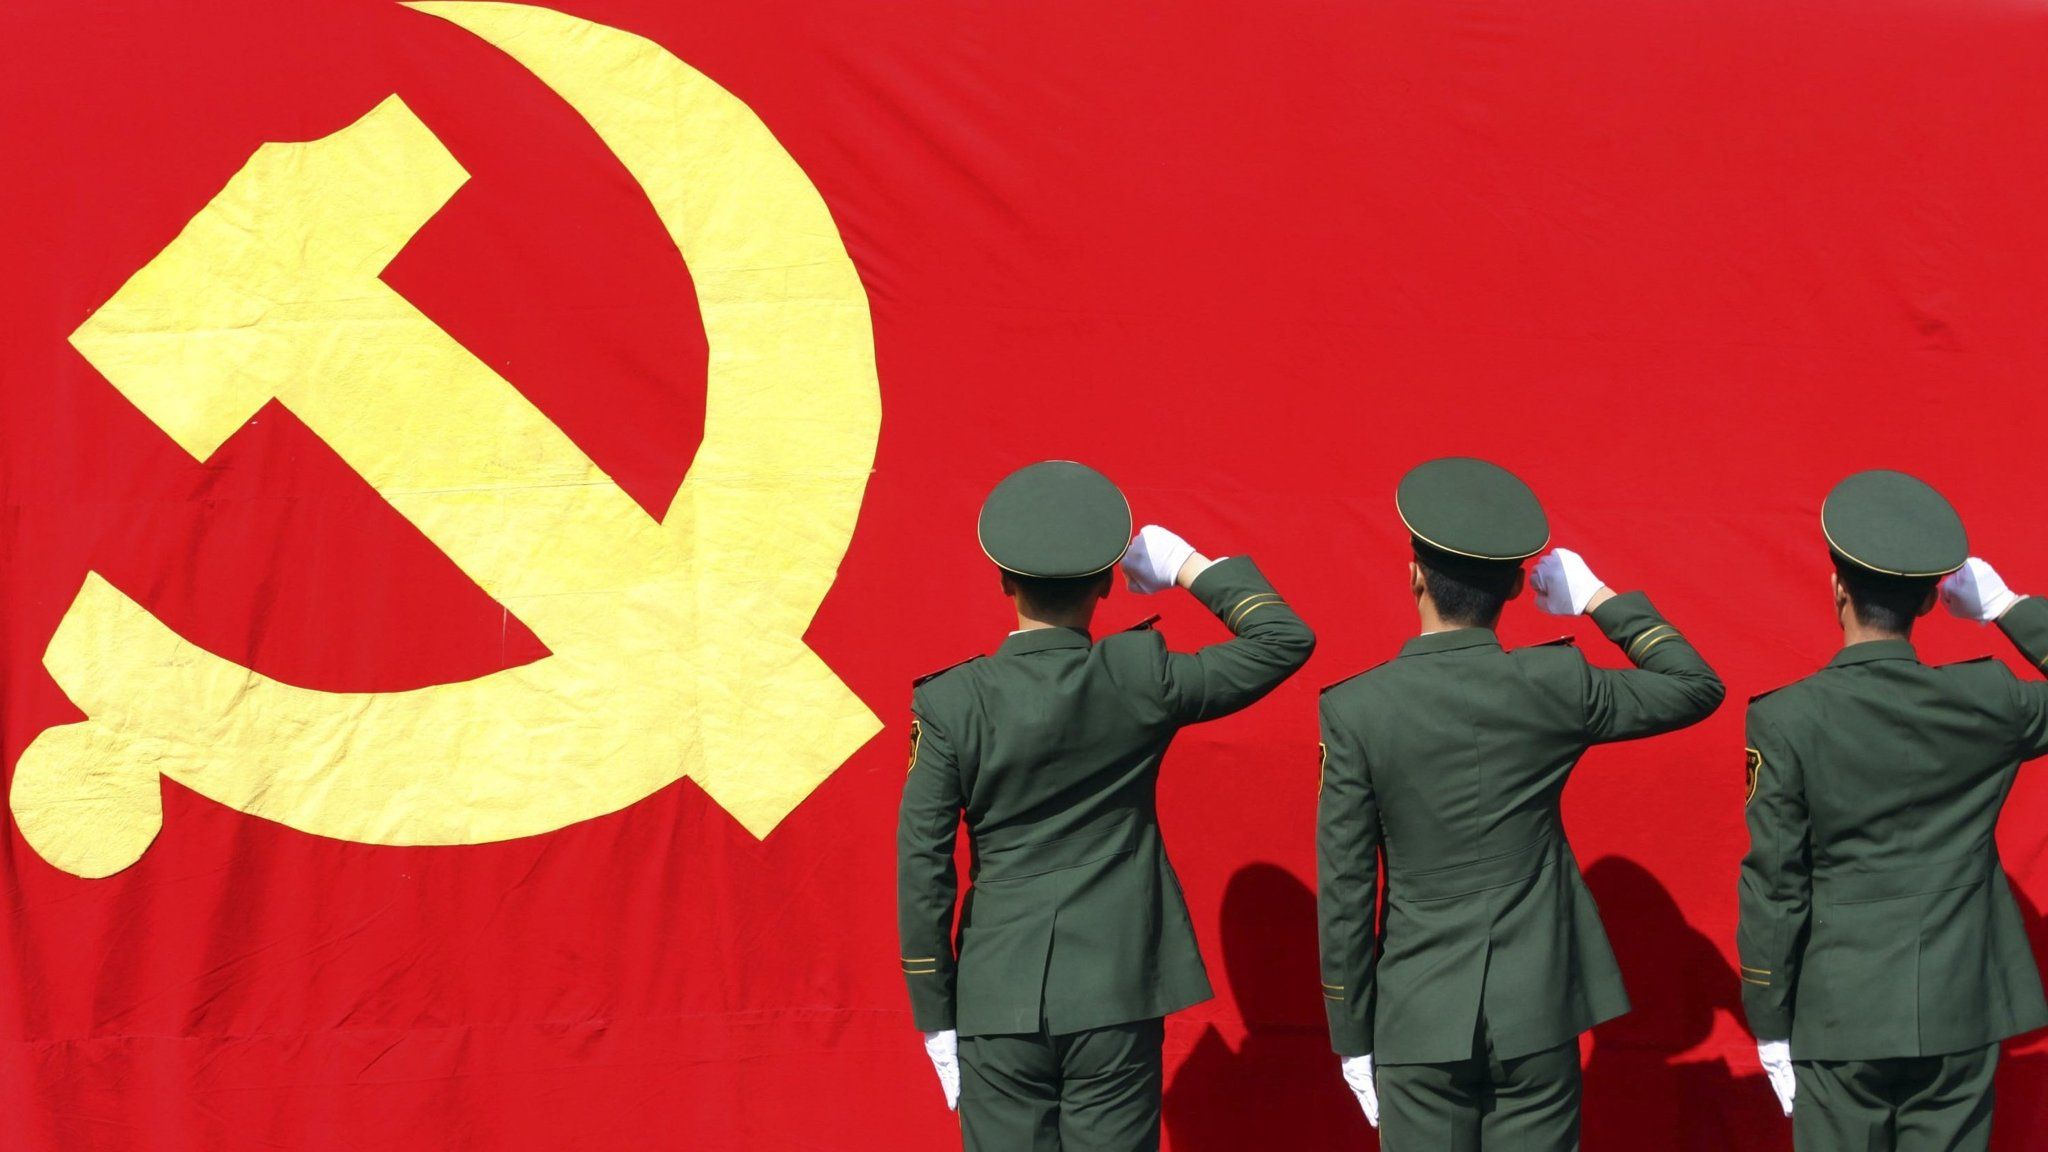 communism in china Communism in china formation little red book the communist party of china  was formed in 1921 it was under mao zedong's control in 1927 eventually.